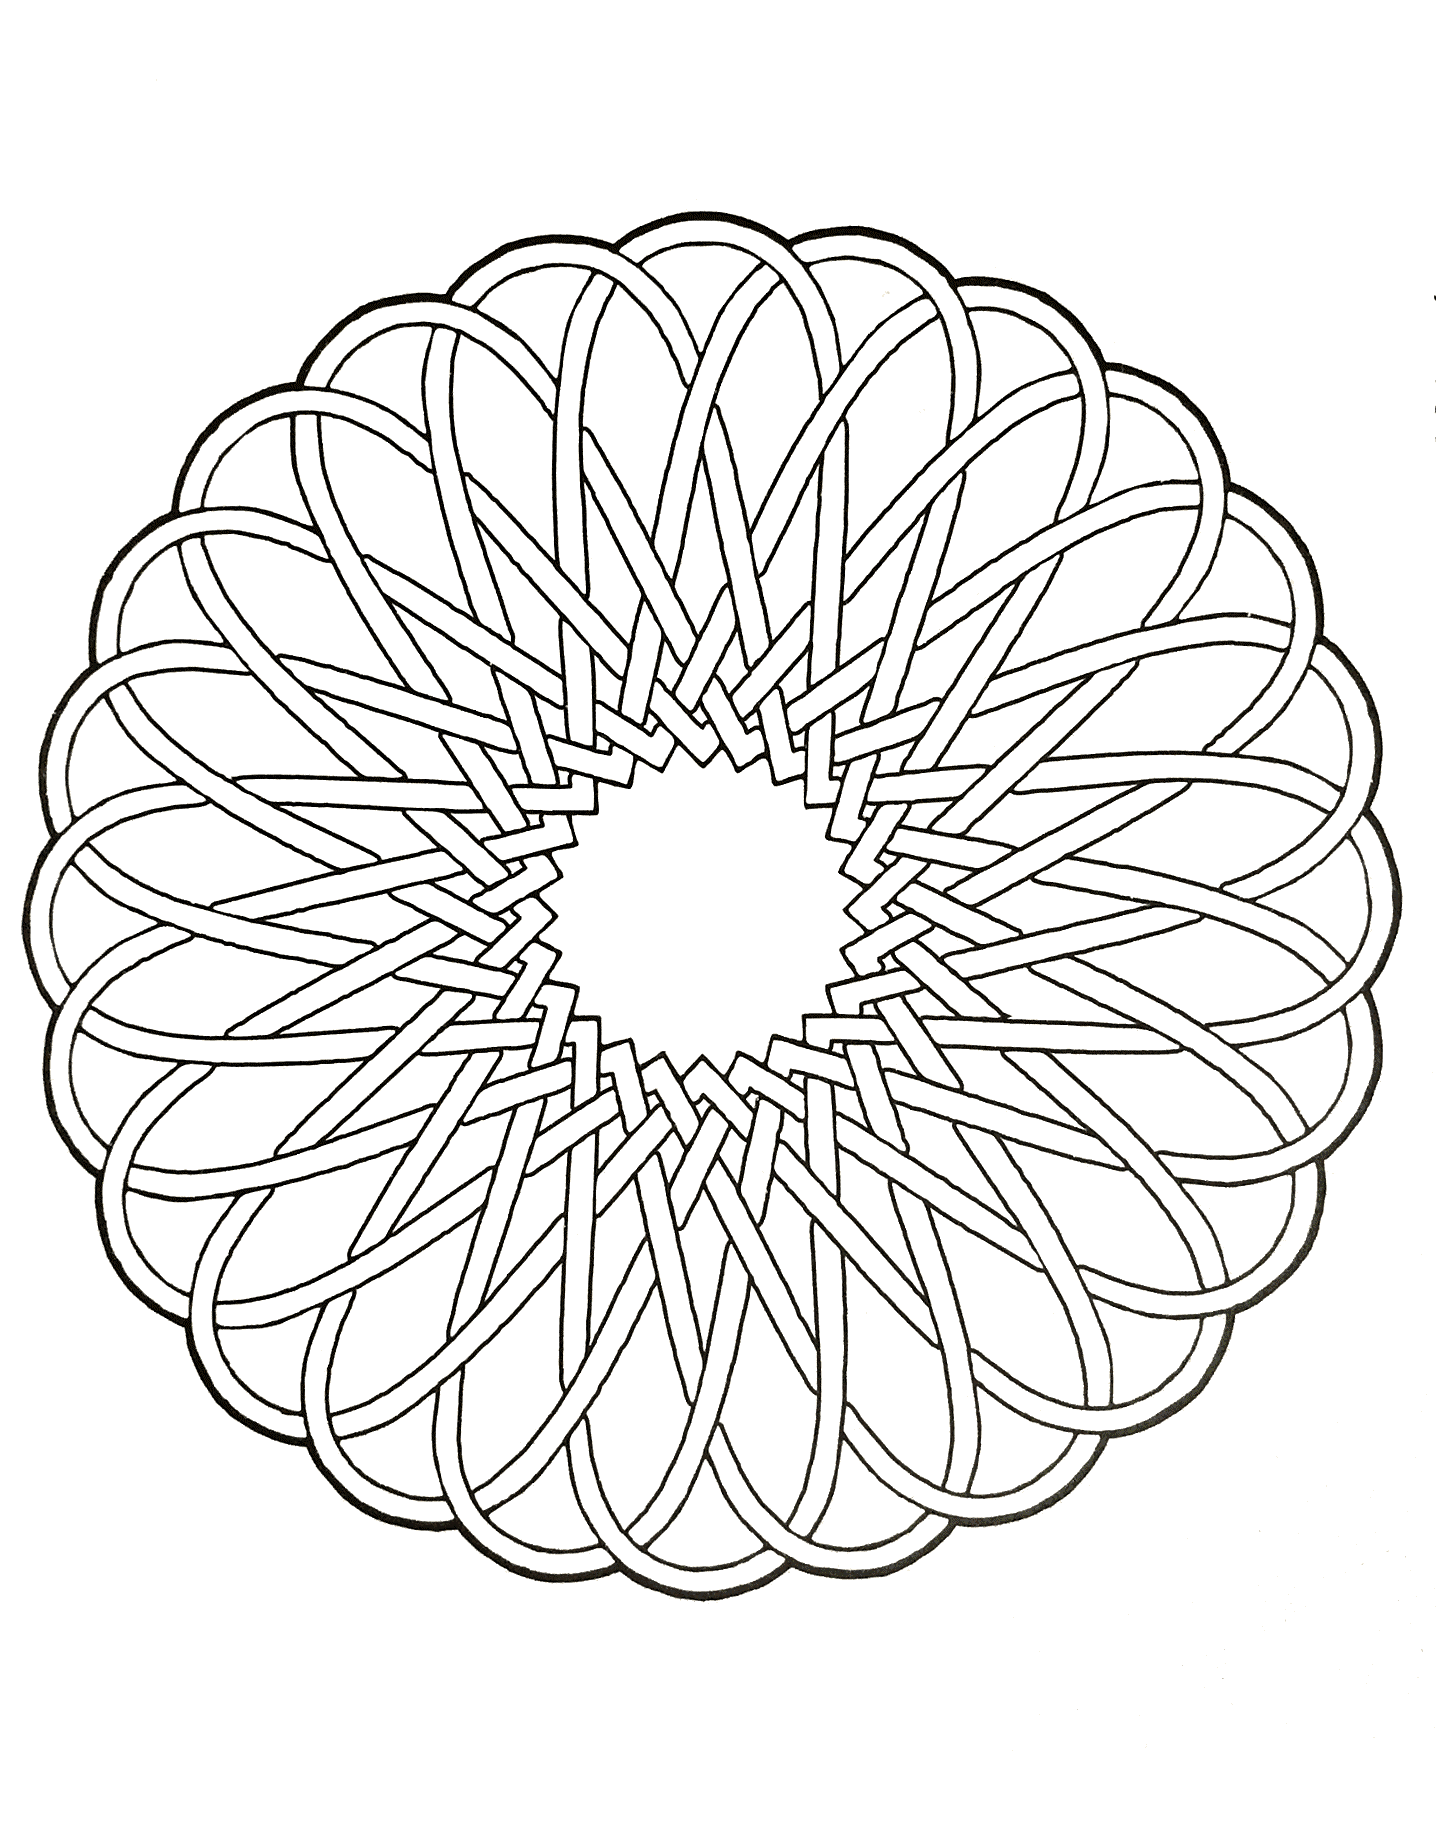 Free coloring page mandalas-to-download-for-free-12 ...Detailed Mandala Coloring Pages For Adults